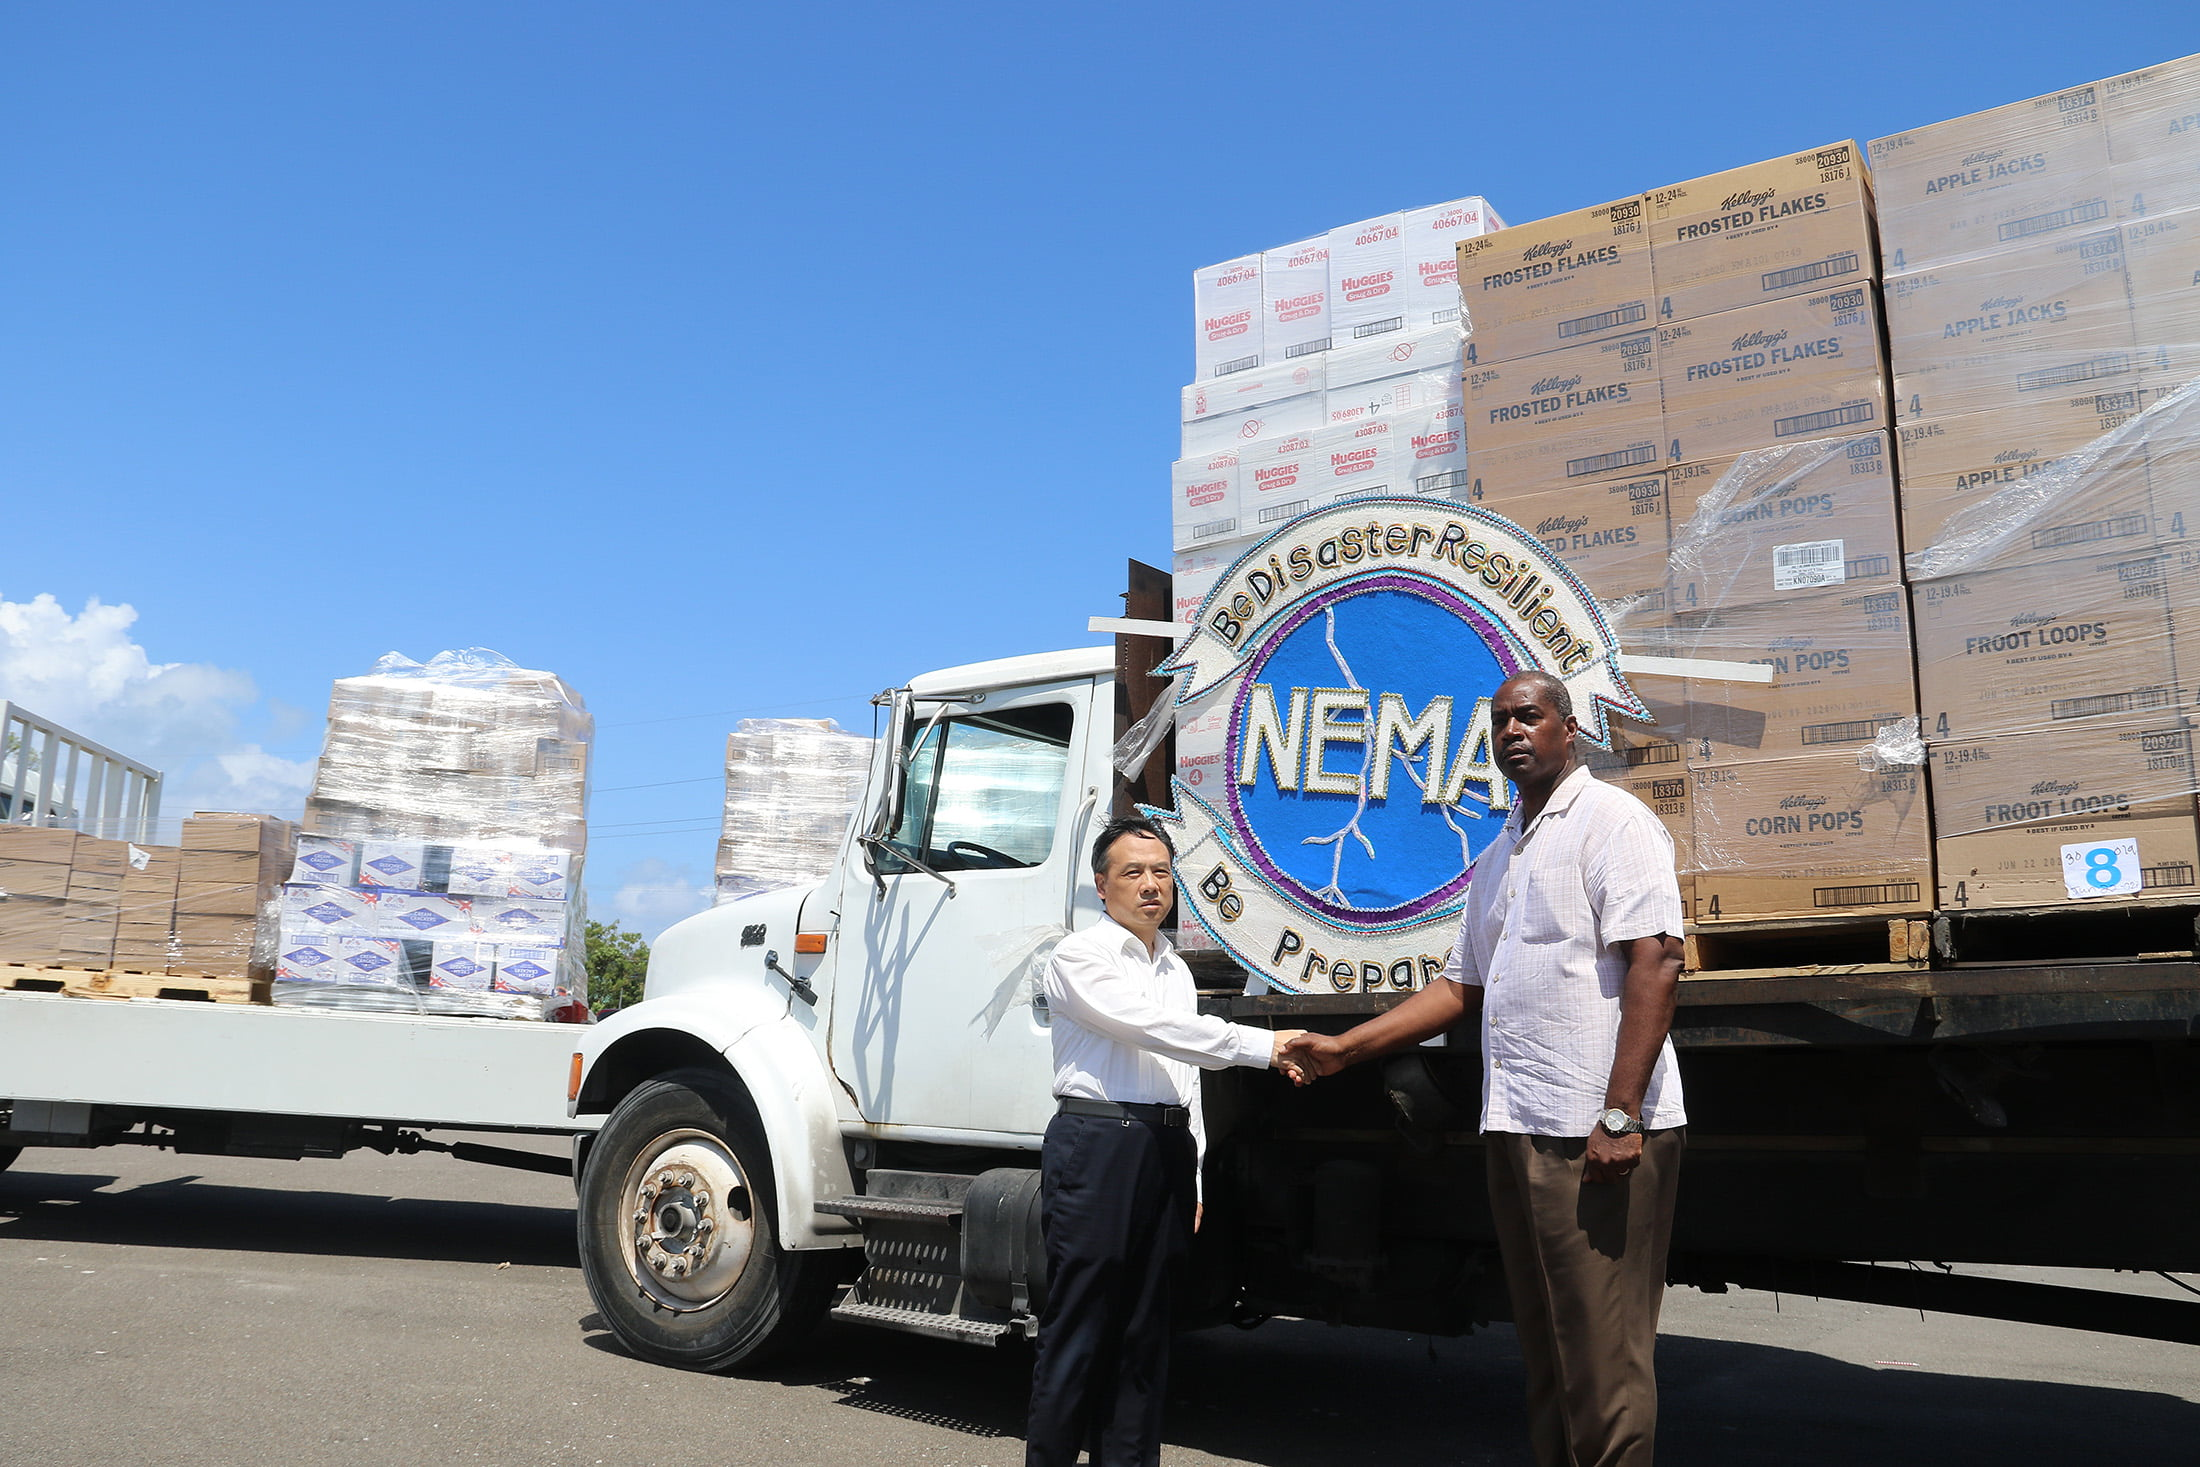 China's Ambassador Presents $20,000 in Goods for the Victims of Hurricane Dorian